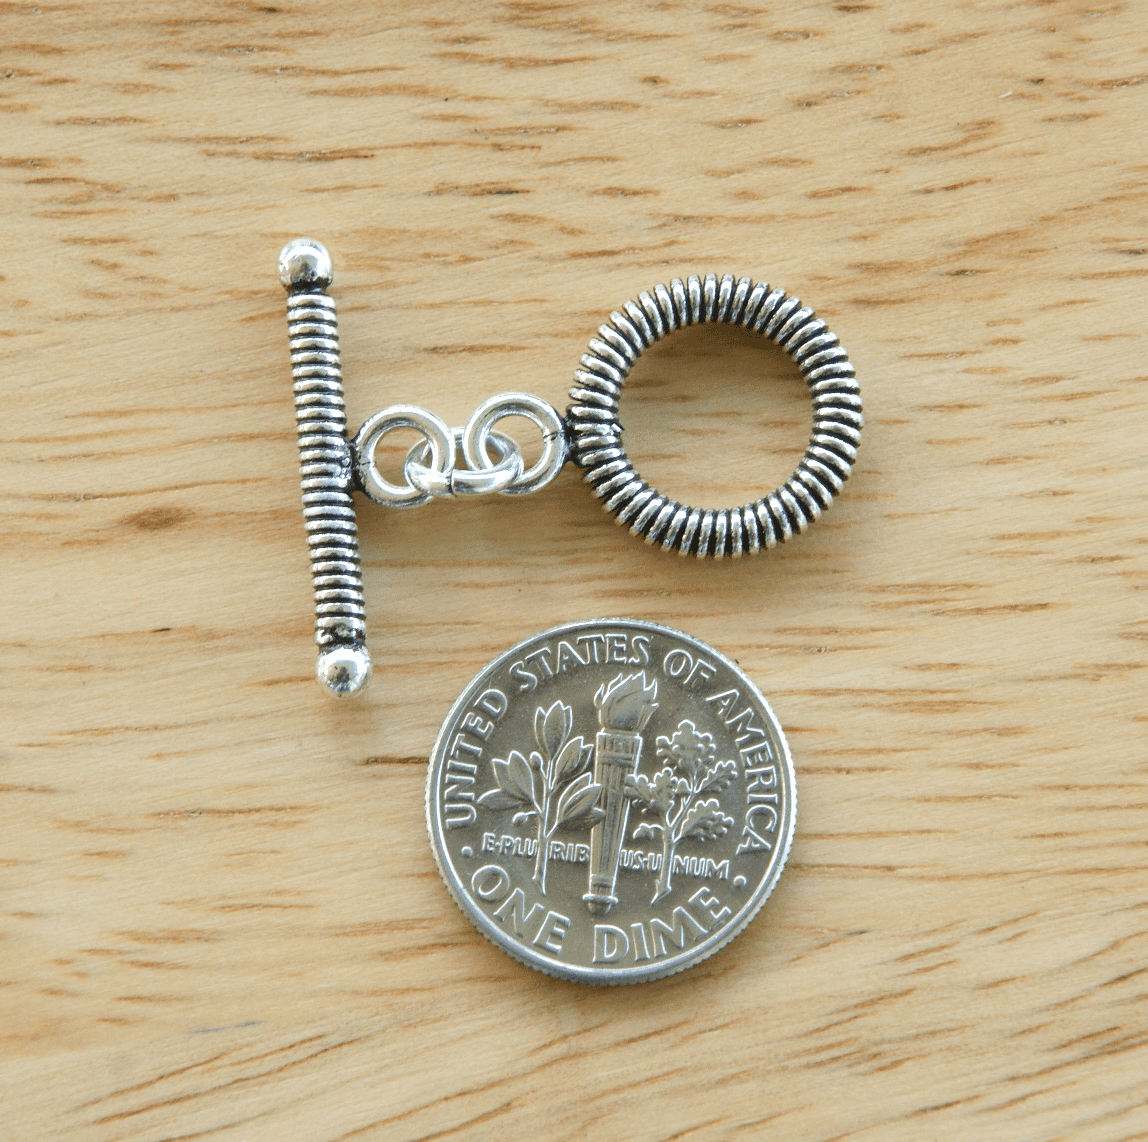 Fancy Detail Toggle - 14mm Circle w/ 22mm Bar - 5 Clasps - .999 Silver Over Copper